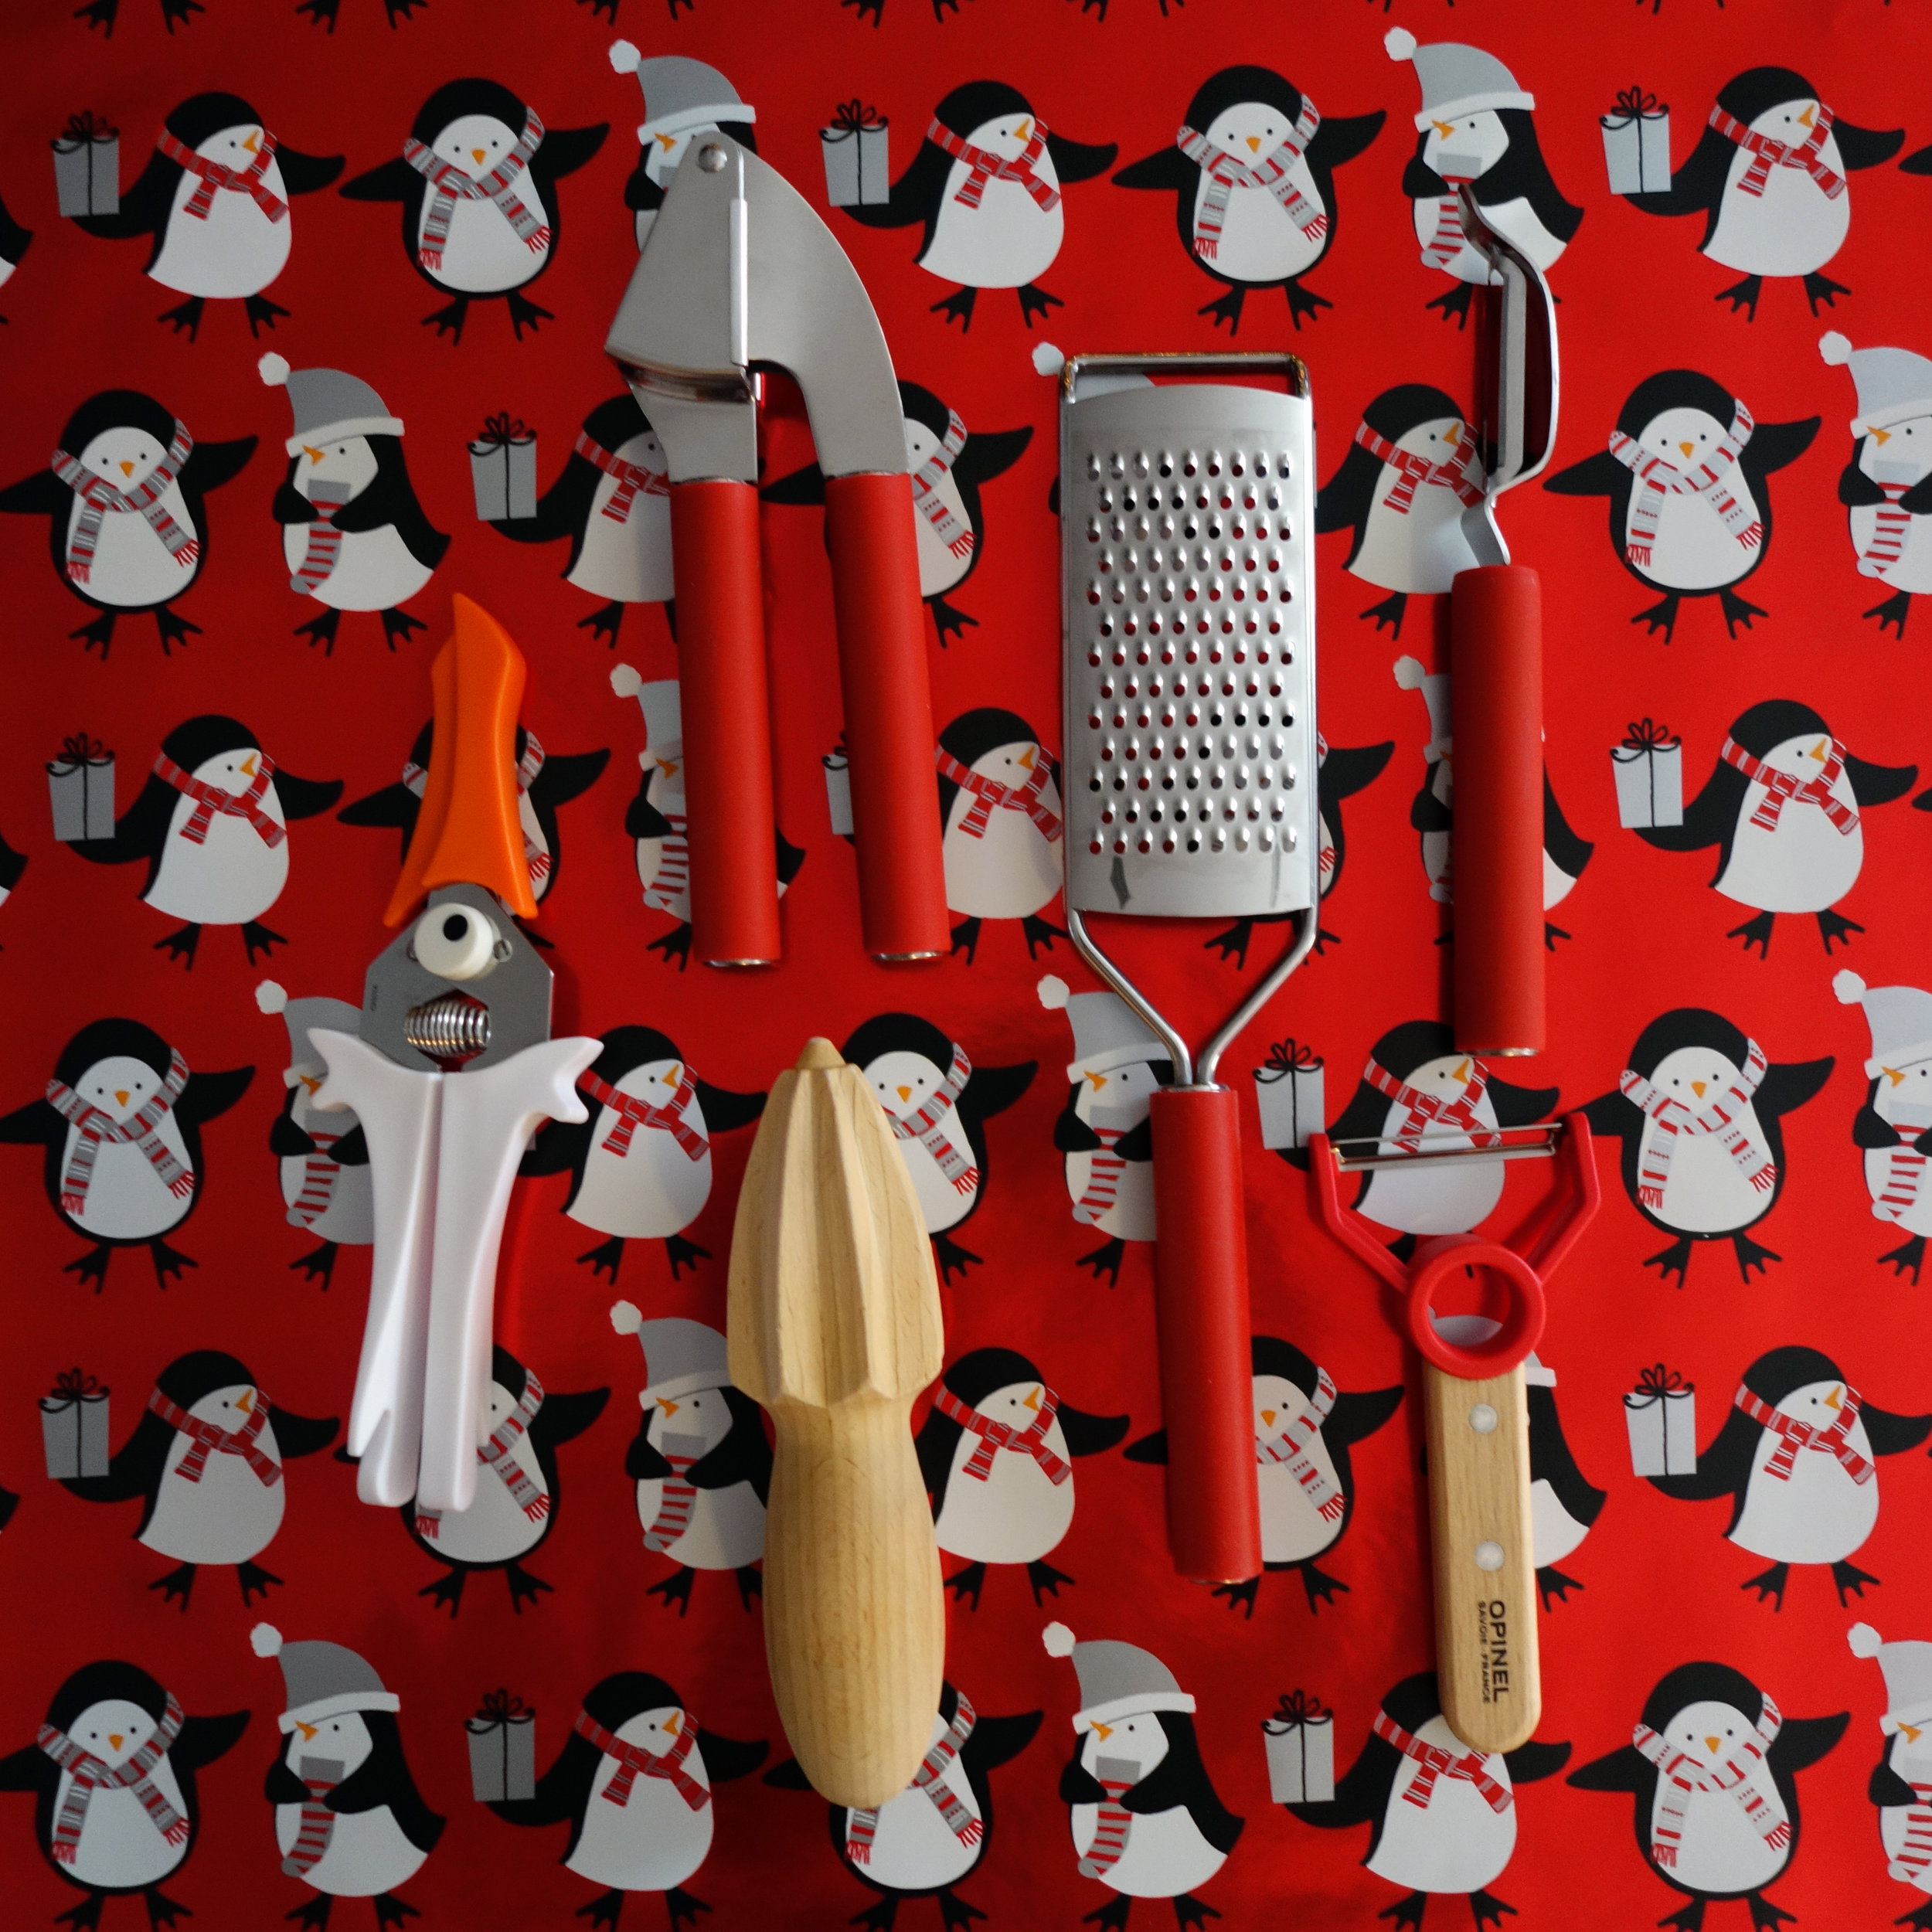 Gift guide for kids who like to cook - Kitchen Gadgets and Tools for Kid Chefs